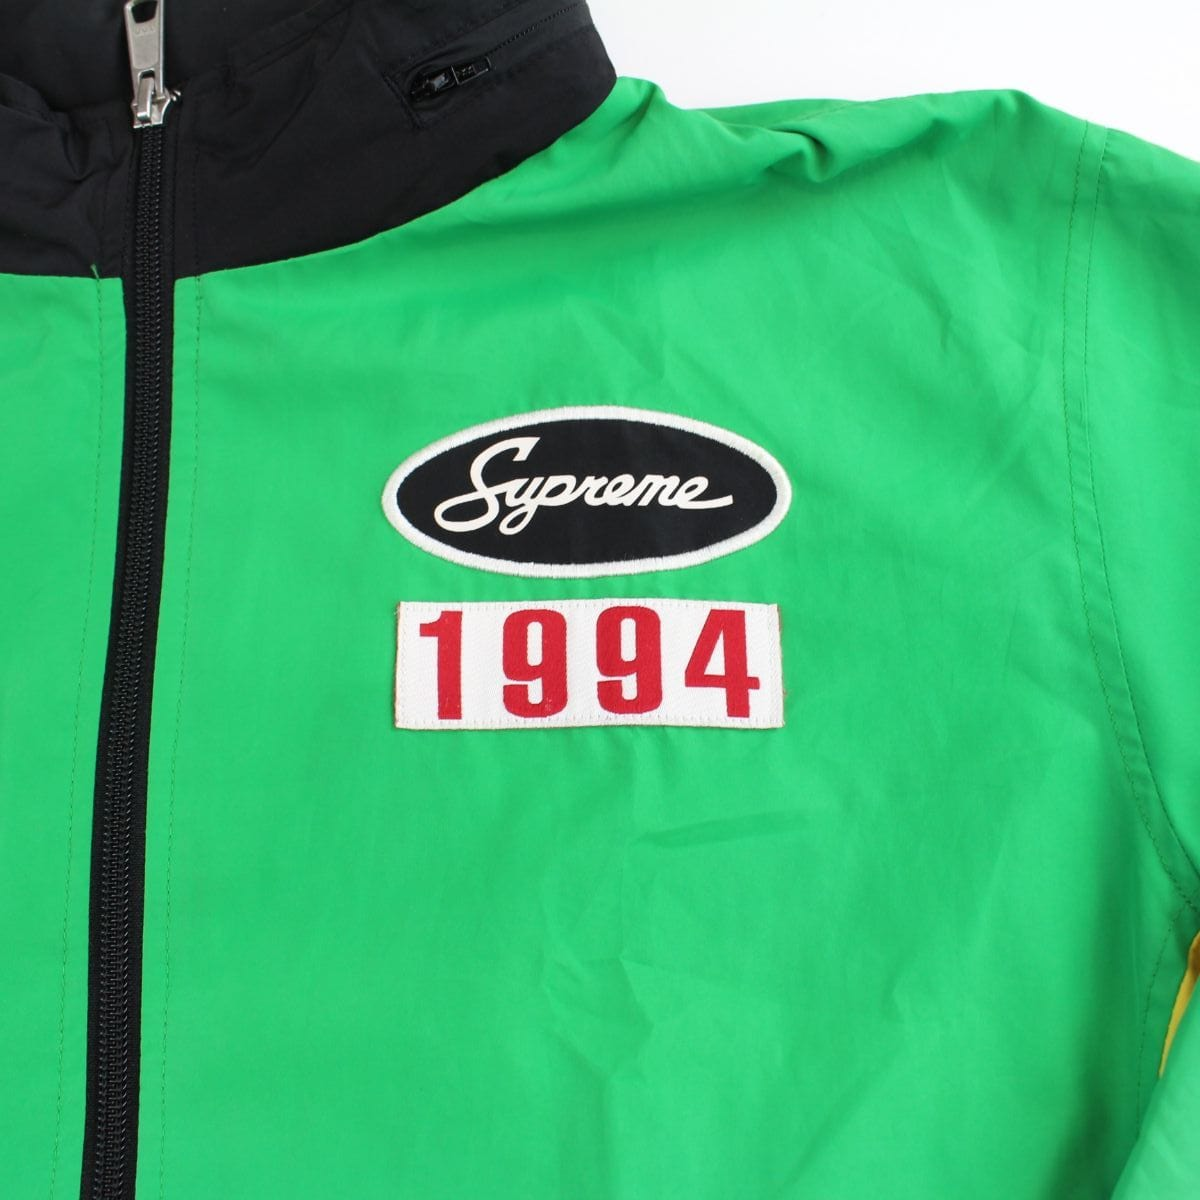 supreme team 94 green yellow track jacket - SaruGeneral